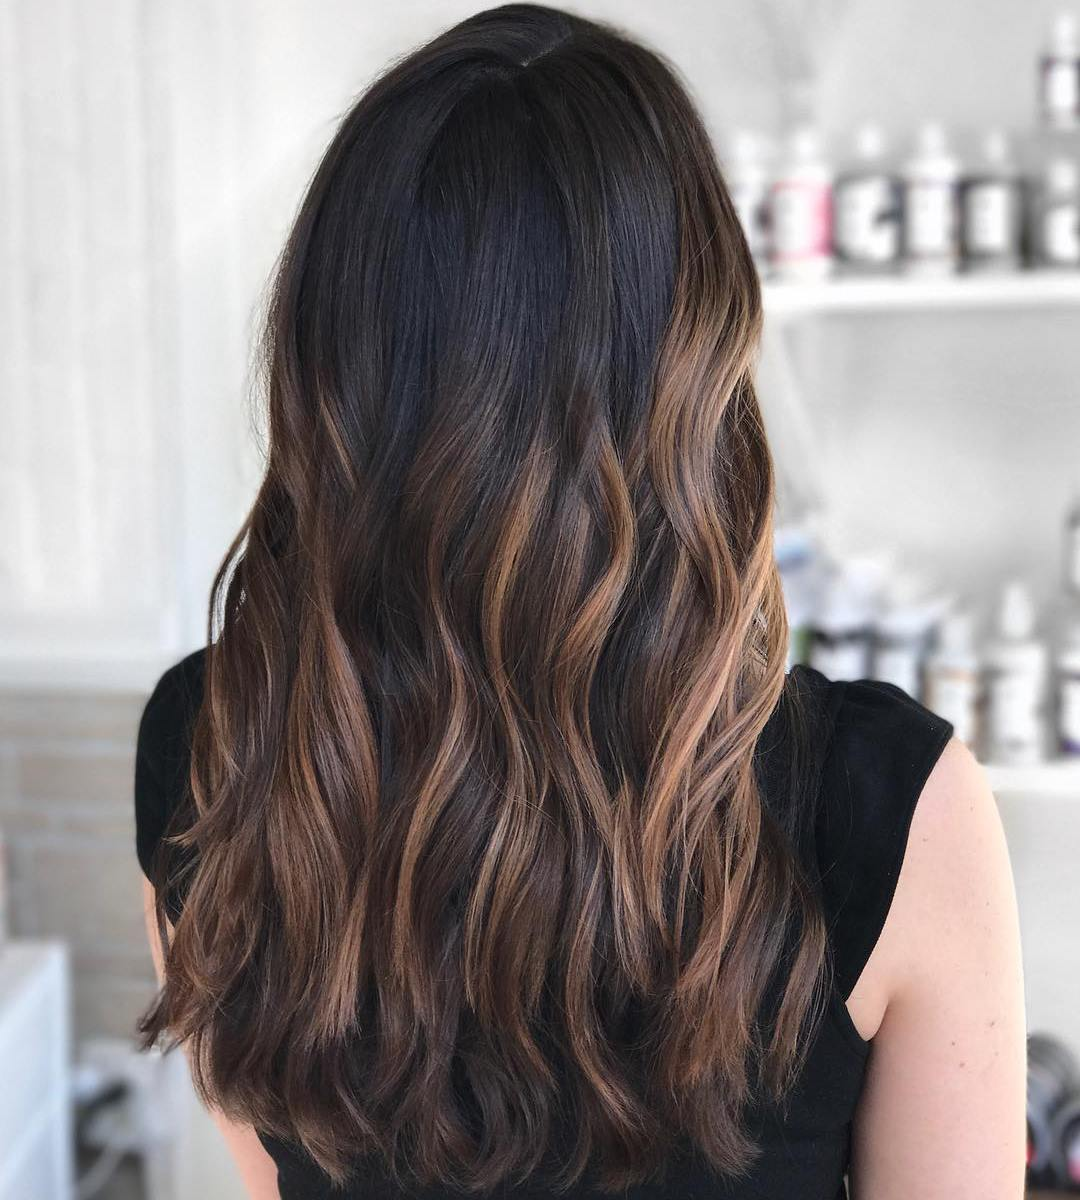 Brunette Hair with Caramel Highlights